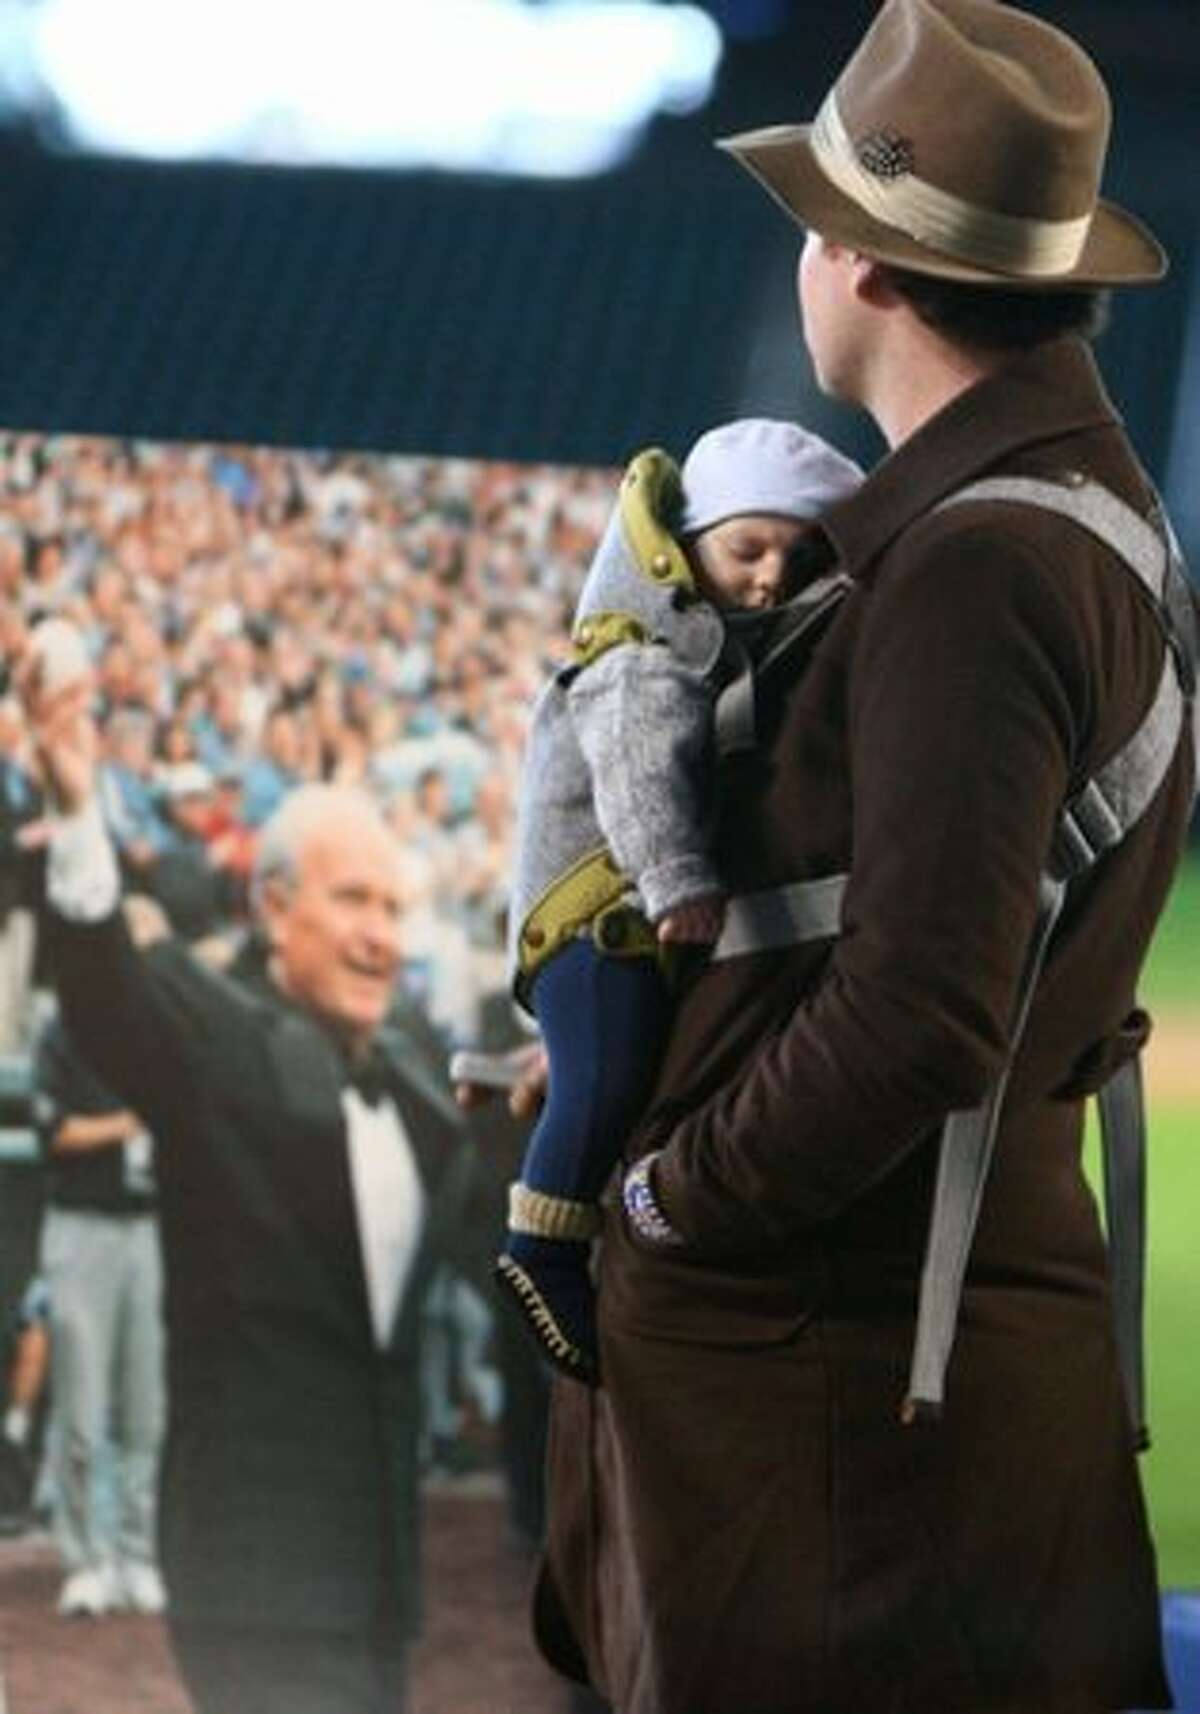 Sam Watts pays his respects with his son Easton, 3 months, during a tribute for Dave Niehaus on Saturday at Safeco Field in Seattle. Niehuas died earlier in the week from a heart attack. The popular play-by-play announcer was the voice of the Seattle Mariners since the team's inaugural season in 1977.